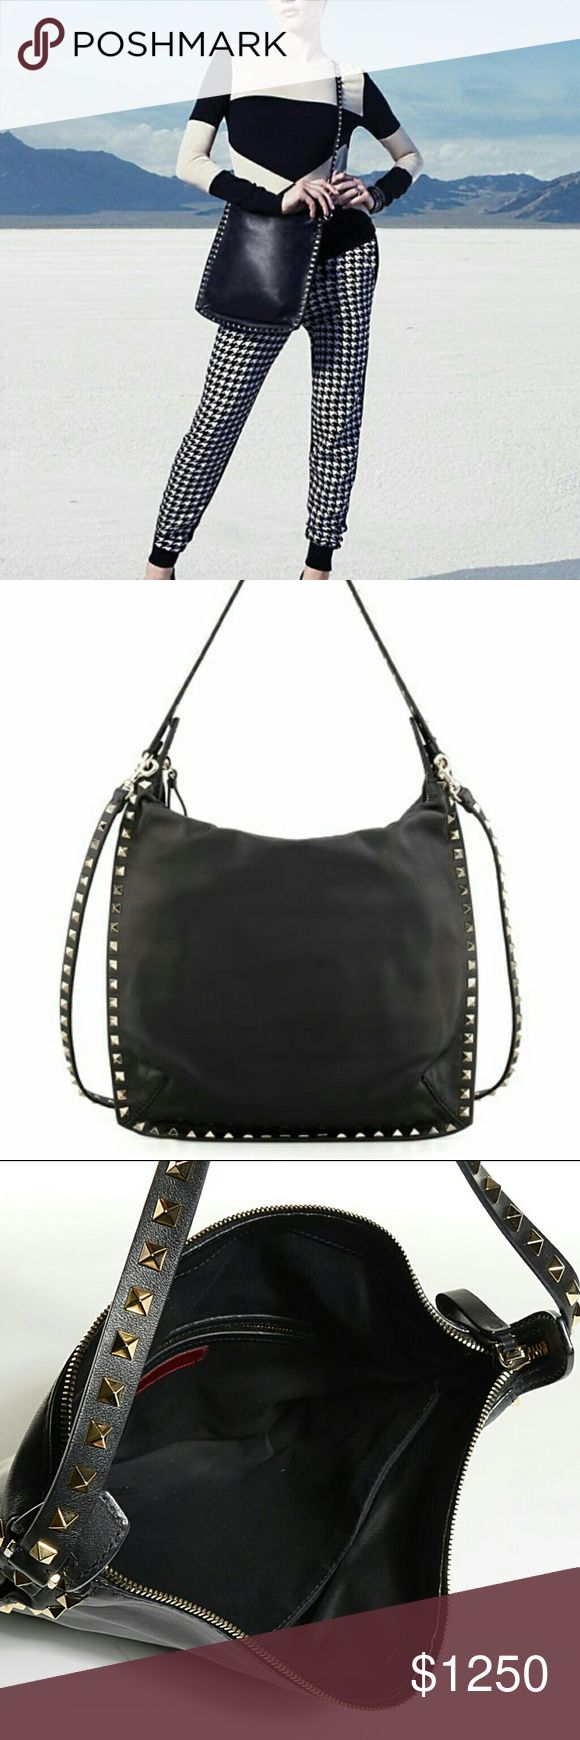 """SALE!! VALENTINO Rockstud Leather Hobo Bag 100% Authentic Valentino Rockstud  w/signature Rockstuds in soft vitello leather + platino hardware. Studded hobo strap + removable crossbody strap for versatility = two ways to carry!  Two-compartment interior, cotton canvas lining w/interior one zip + two slip pockets, 11.5""""H x 12""""W dimensions.  Gently used, light scratches/indentions from occasional wear, missing pull tab at main zip compartment. Interior is super clean, all studs intact…"""